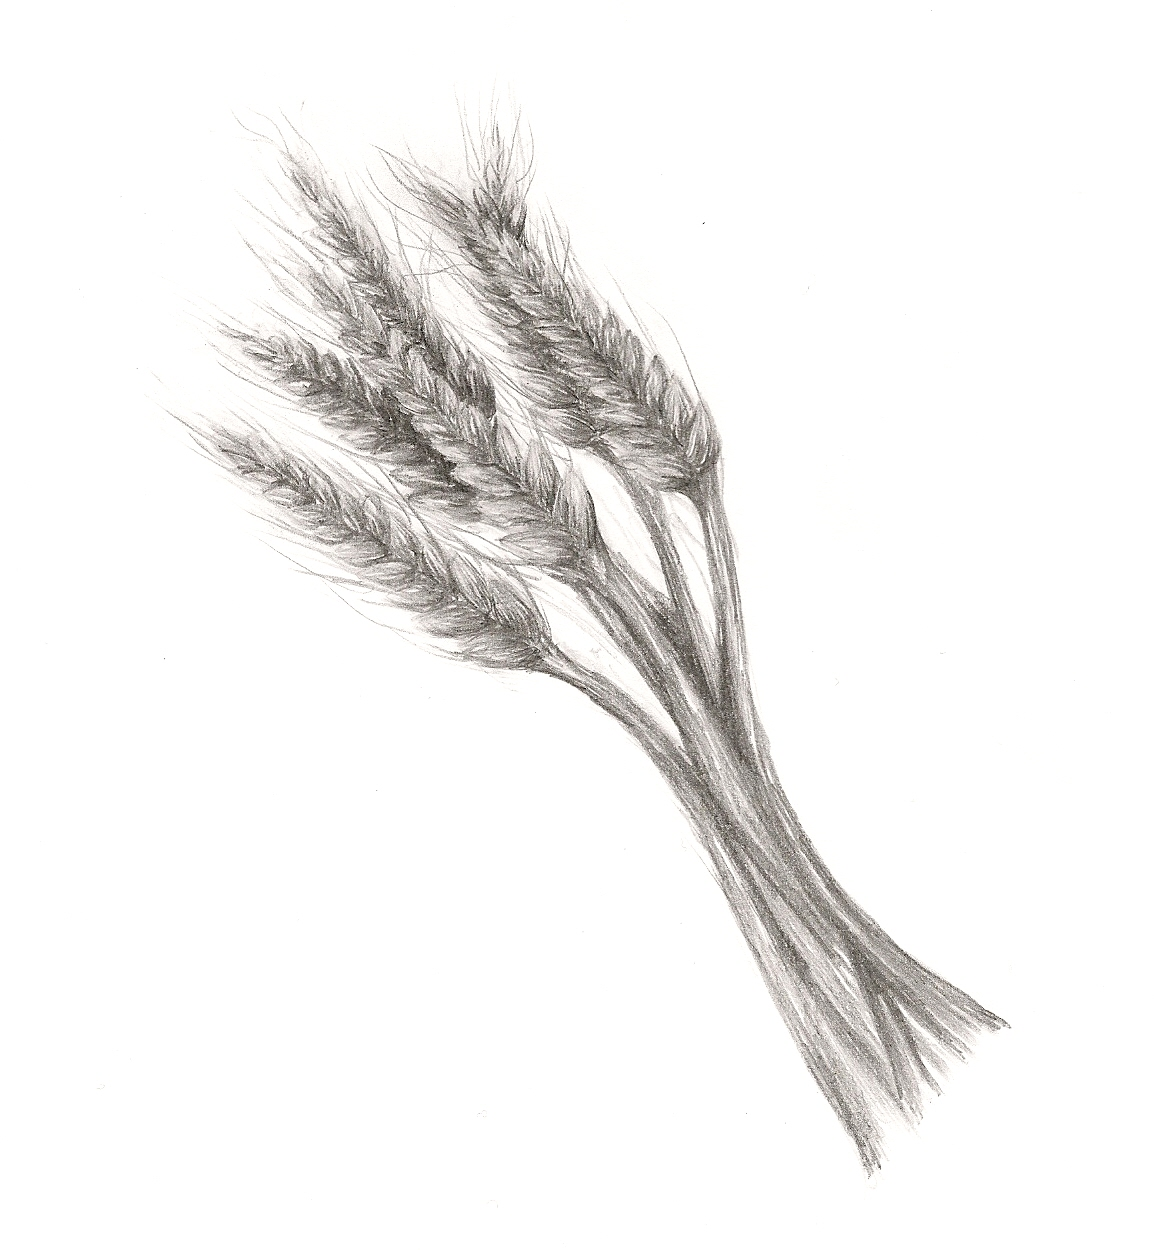 Sheaf Of Wheat By Chelsea Templin